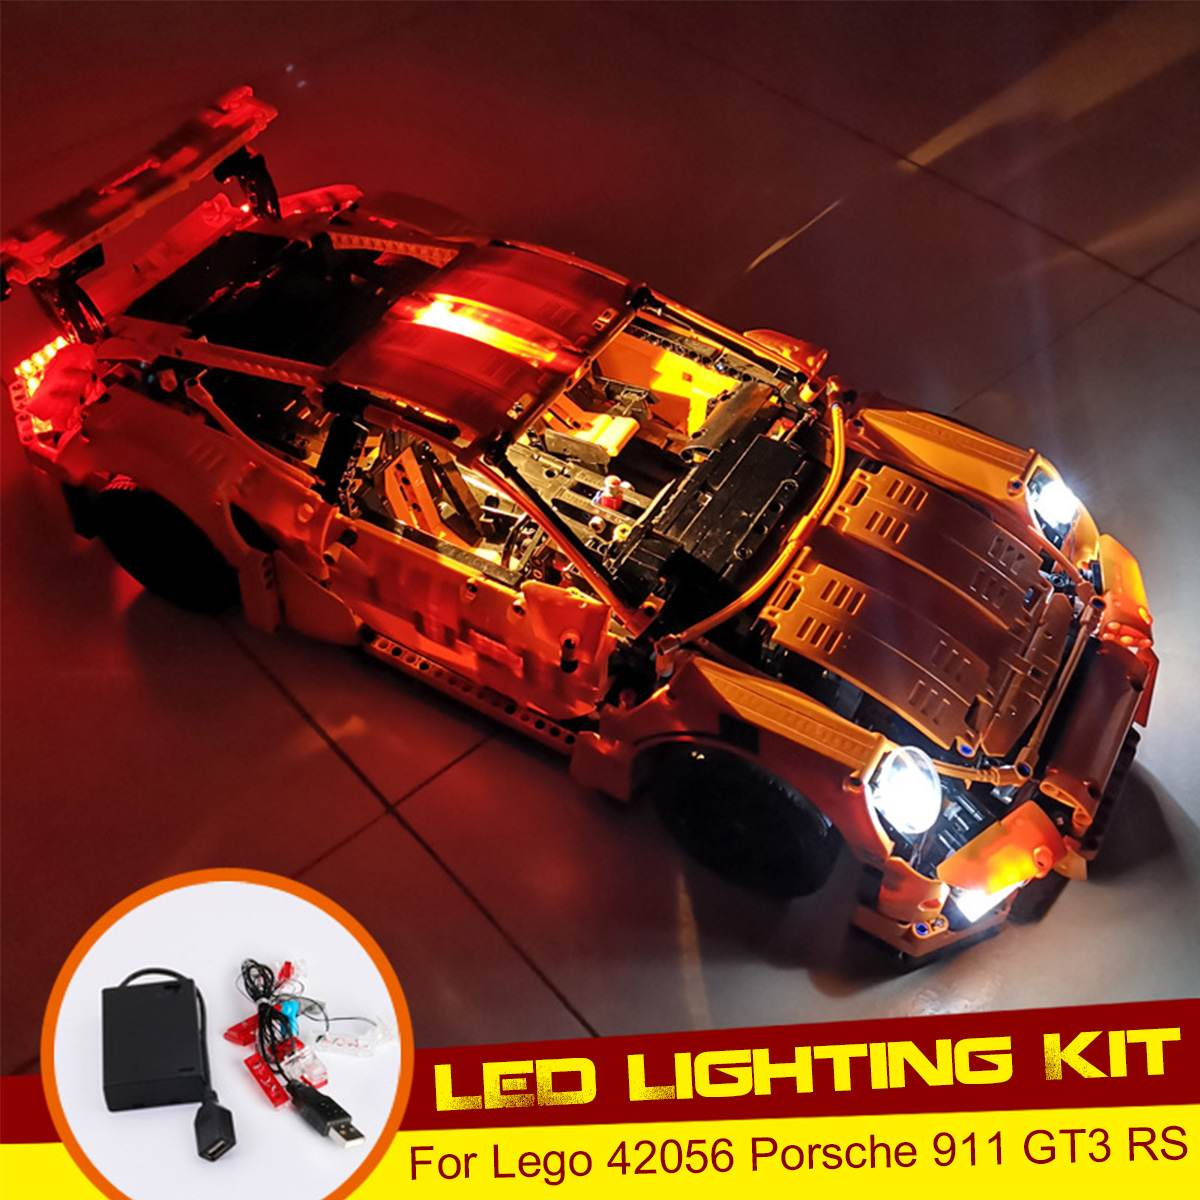 LED Lighting Kit for Lego for 42056 for Porsche 911 GT3 RS Toy Bricks Car Lighting Parts Powered by USB ( Model Not Included )